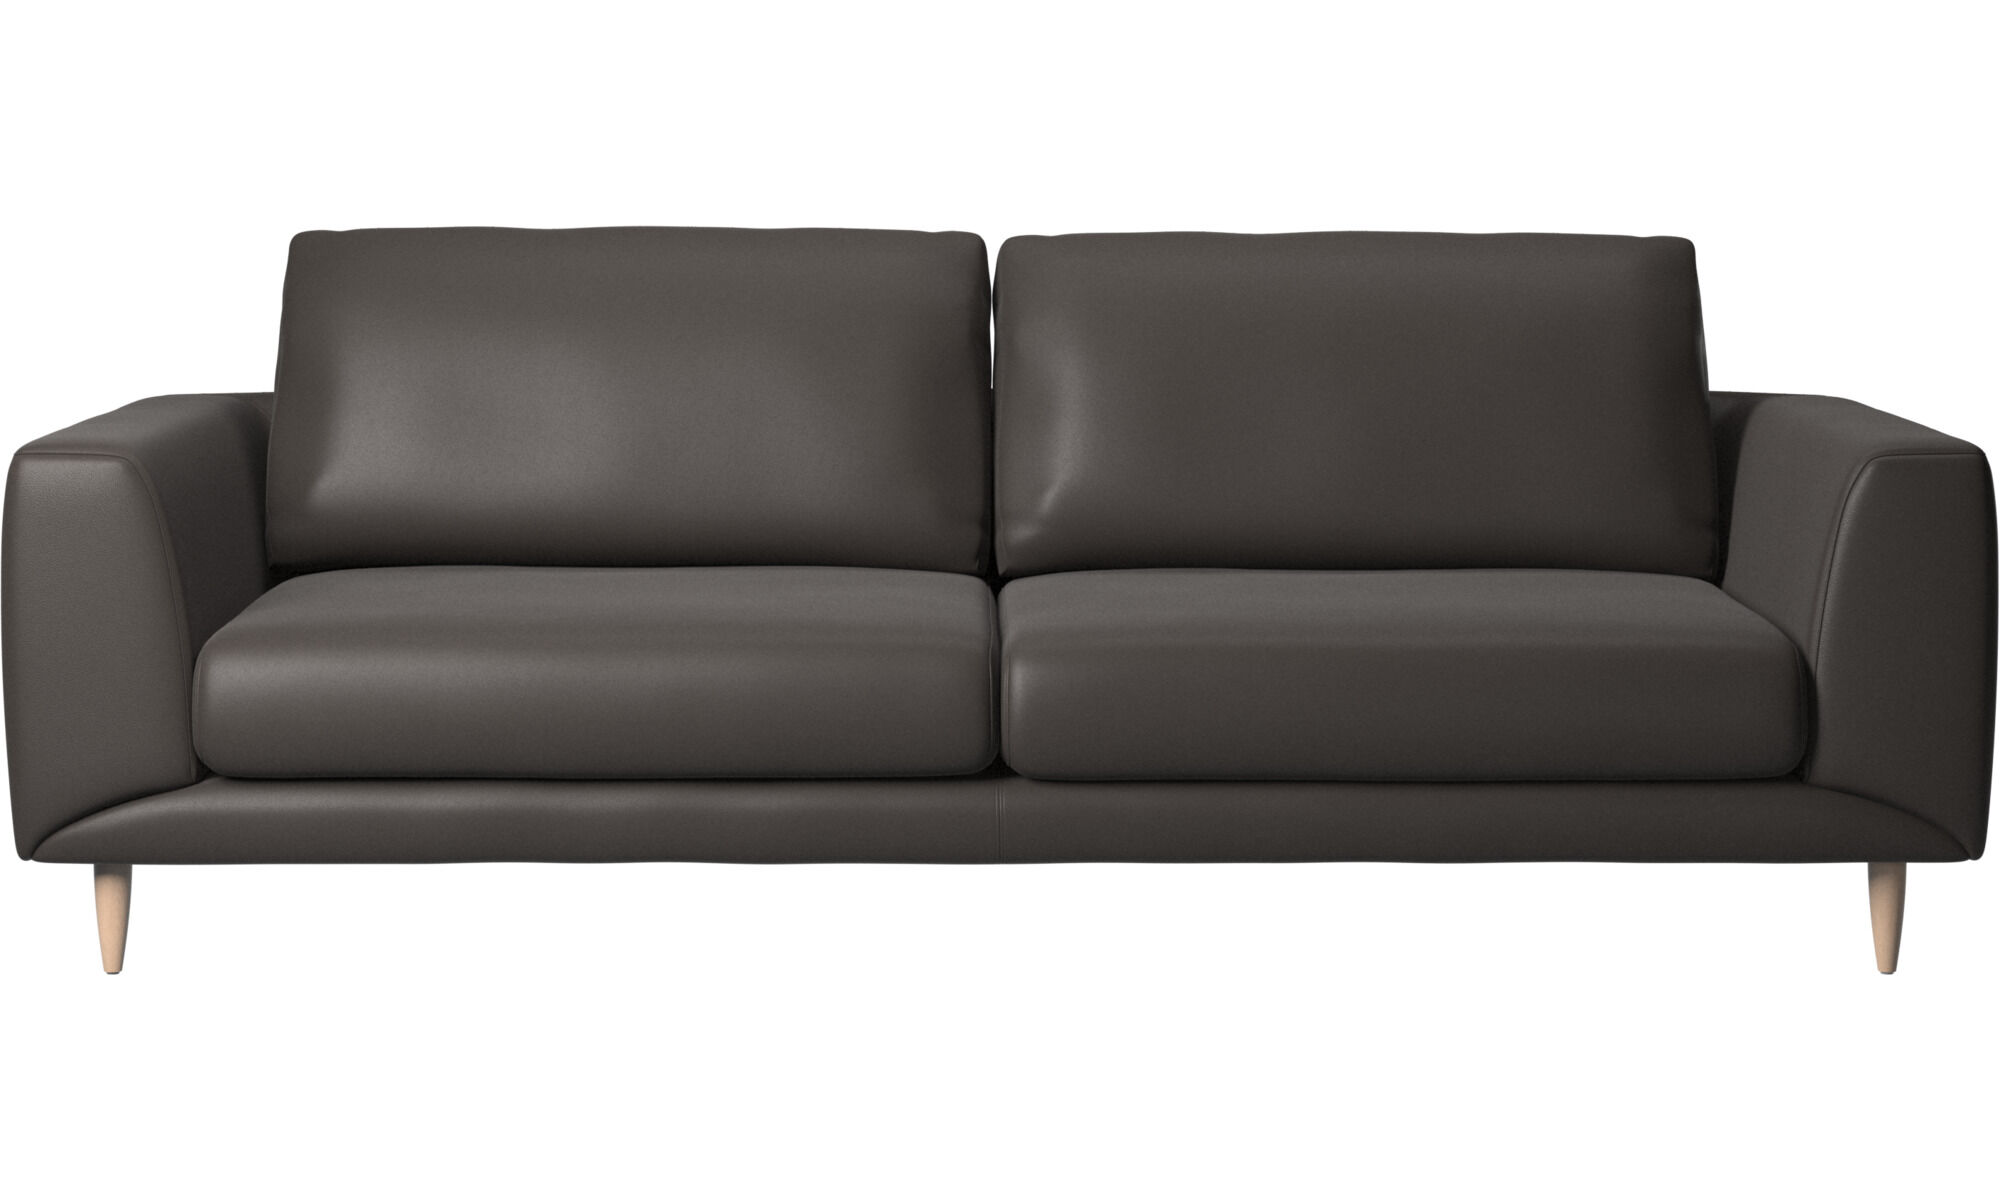 moods 3 seater leather sofa bed martha stewart saybridge review brown sofas from boconcept fargo